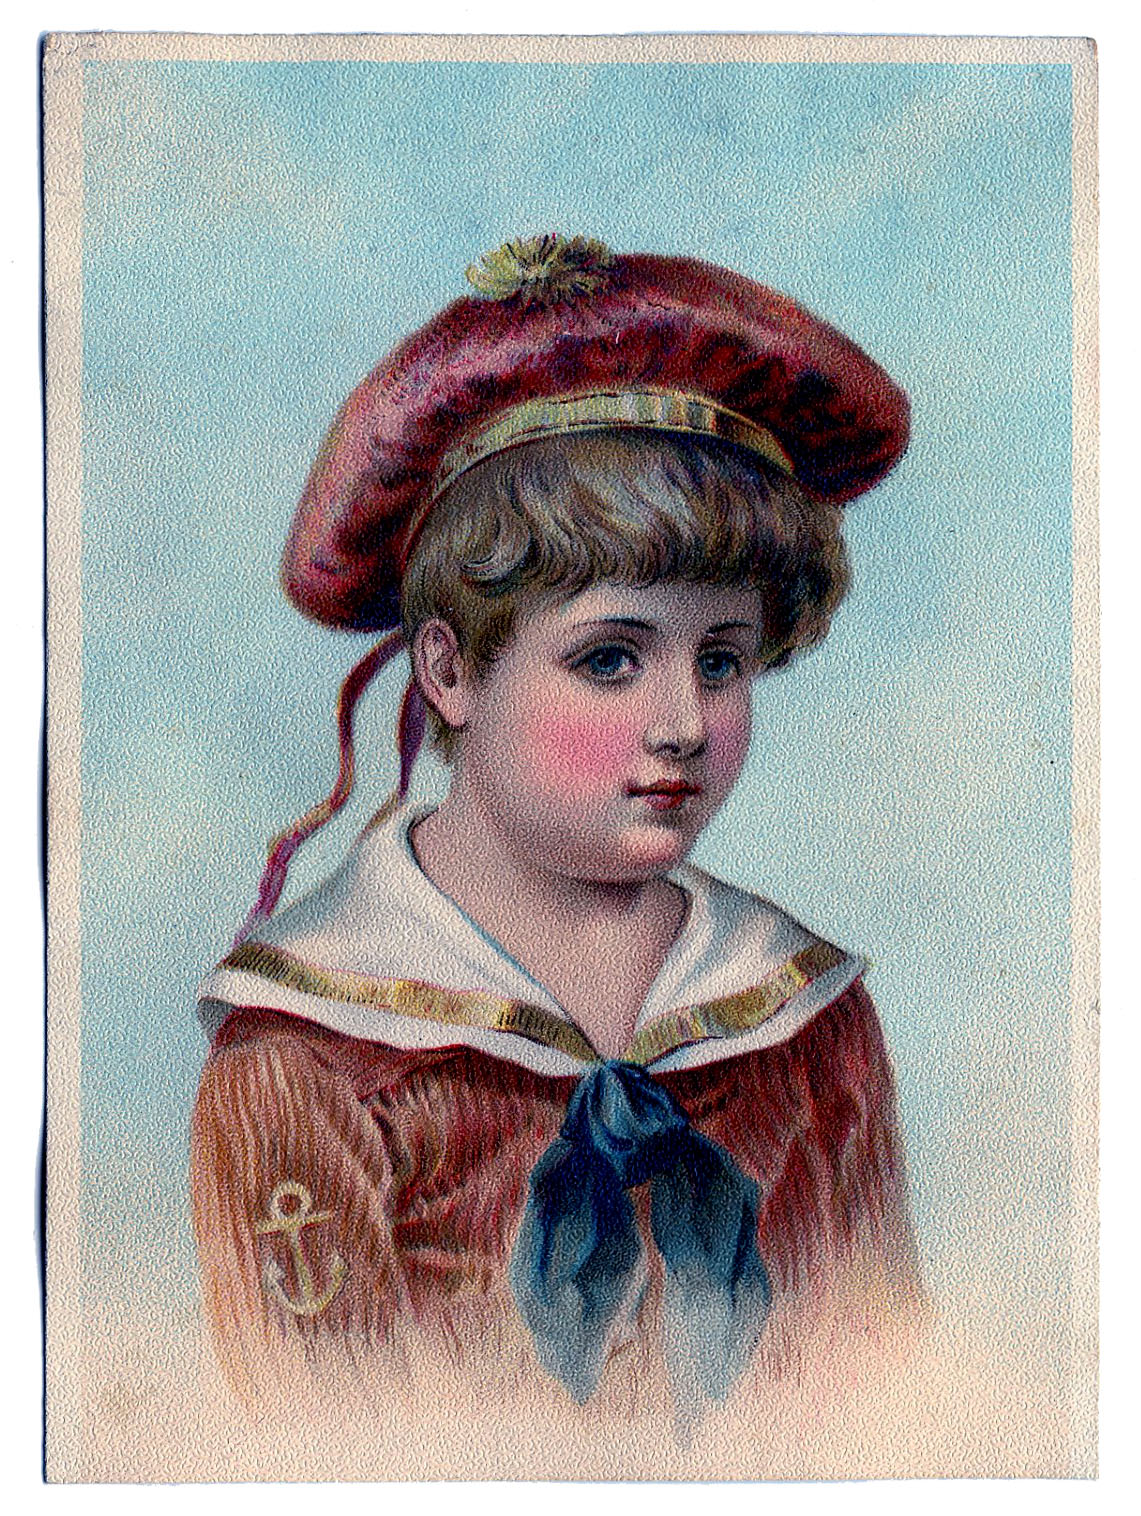 Vintage Clip Art Darling Victorian Sailor Boy The